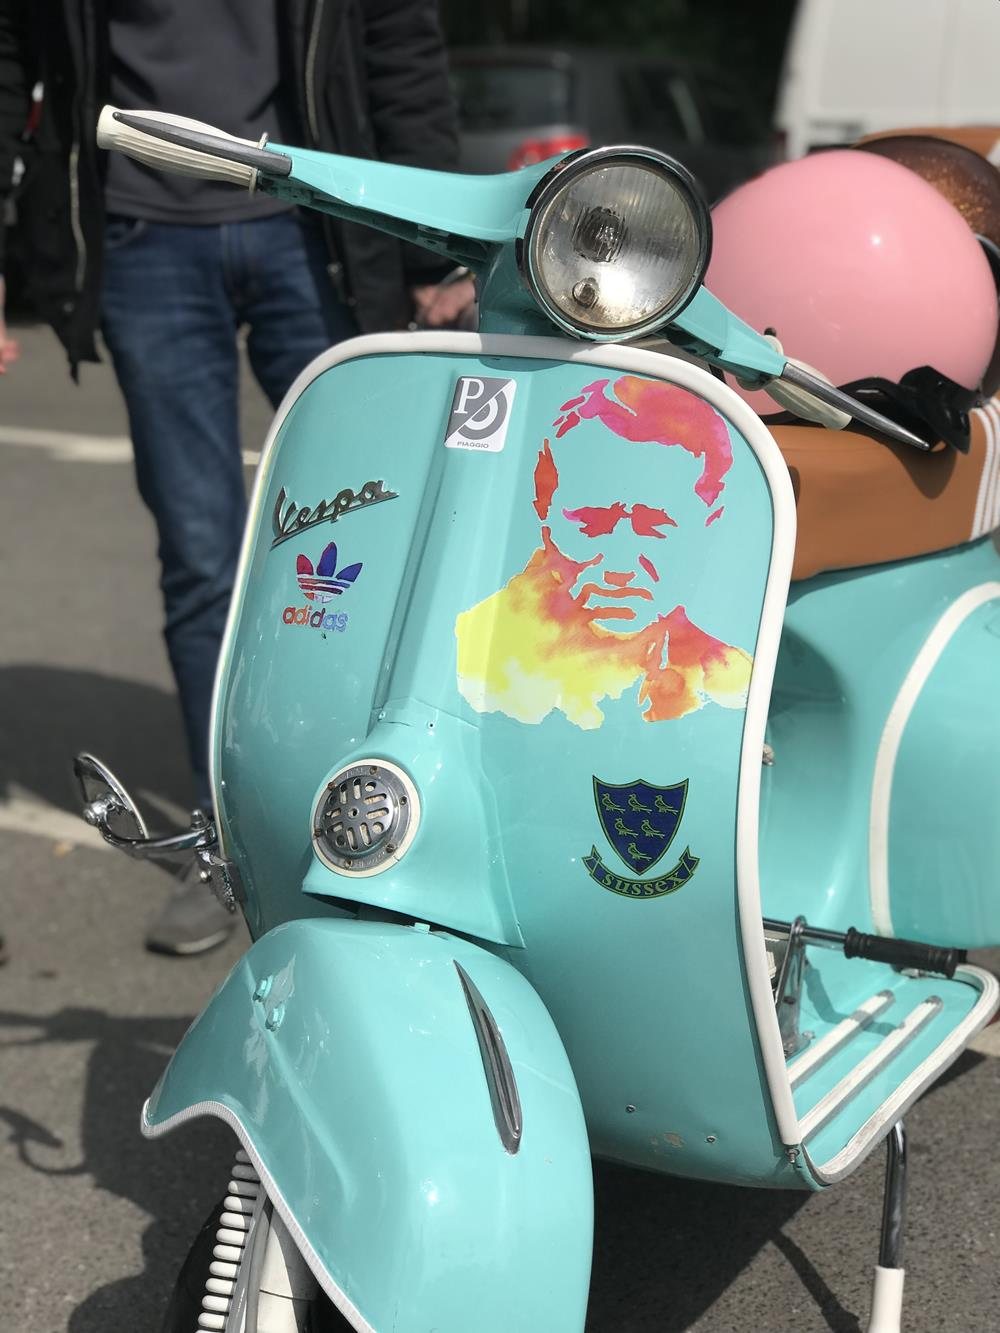 Turquoise Vespa smallframe scooter